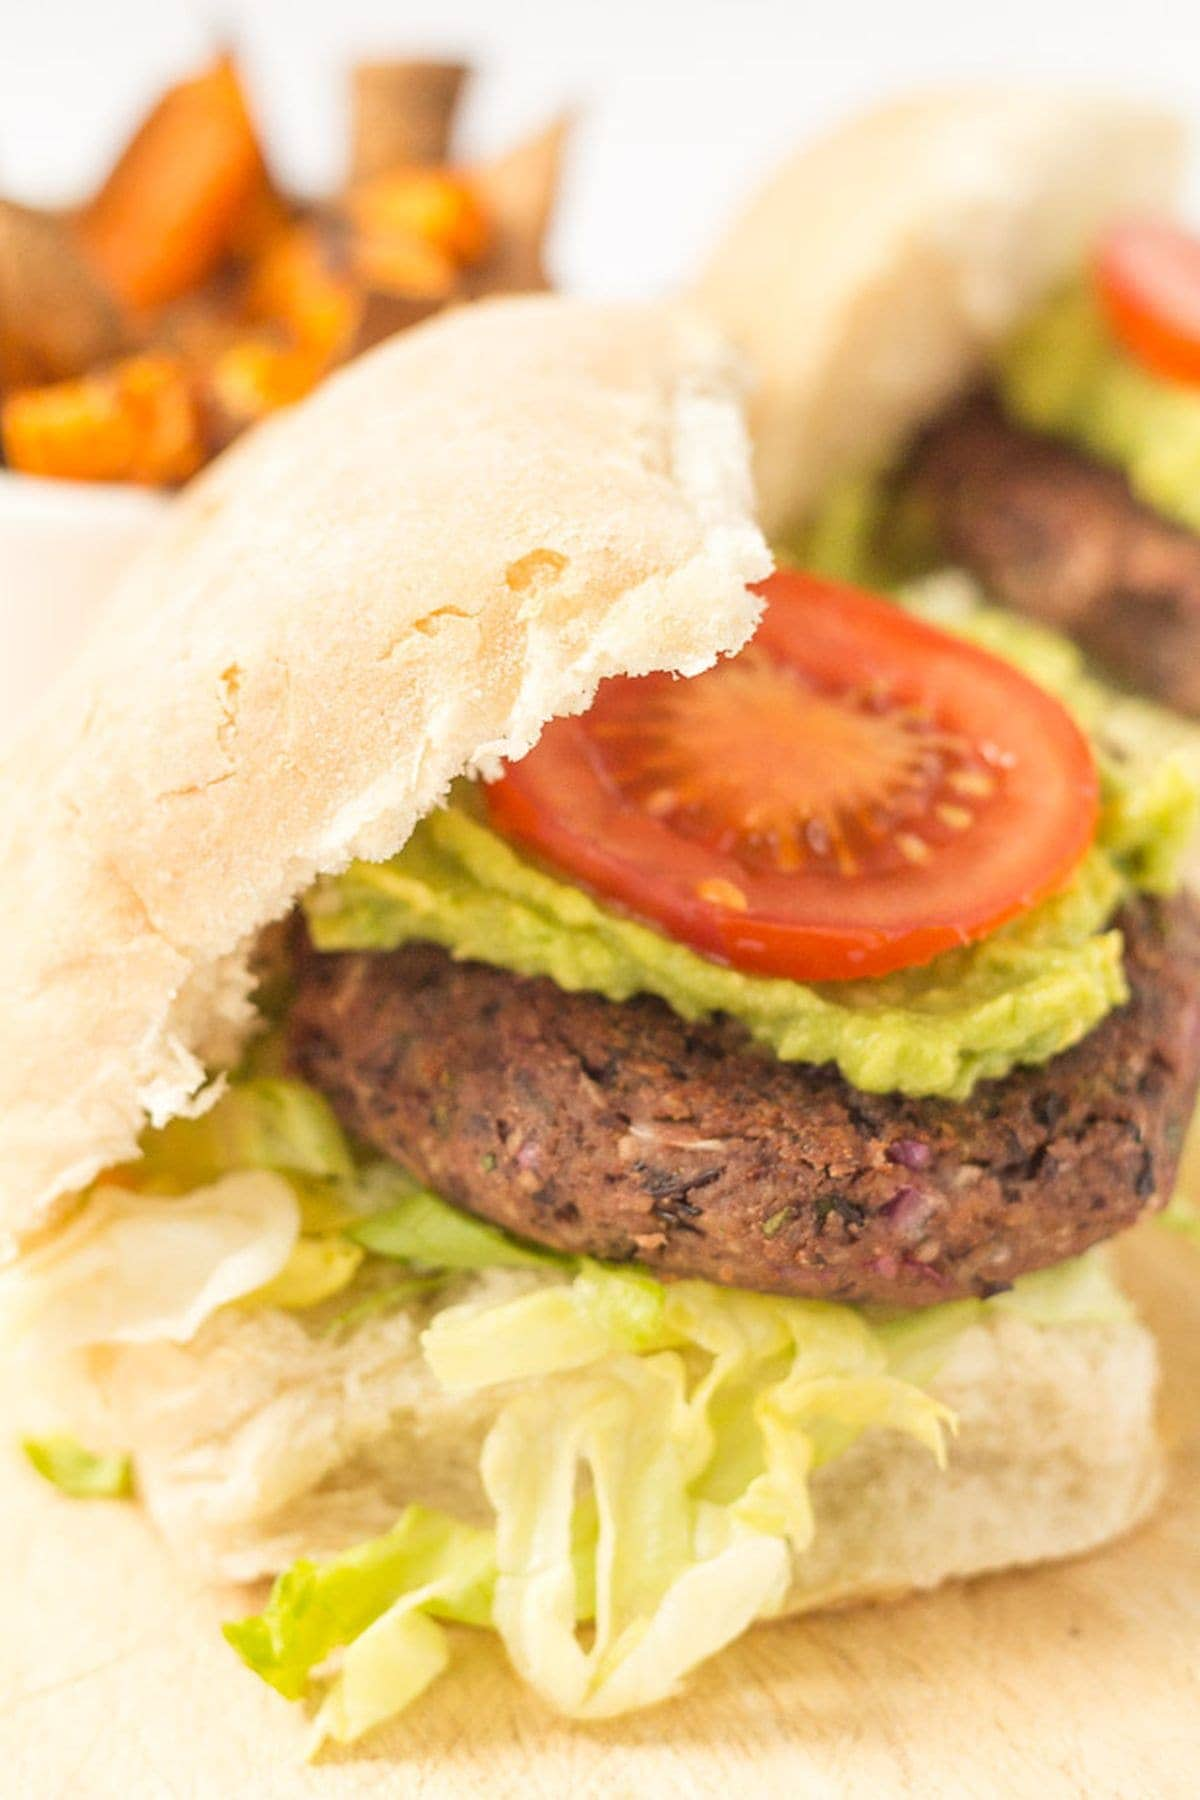 A quick and easy black bean burger in a burger bun topped with guacamole and a sliced tomato.